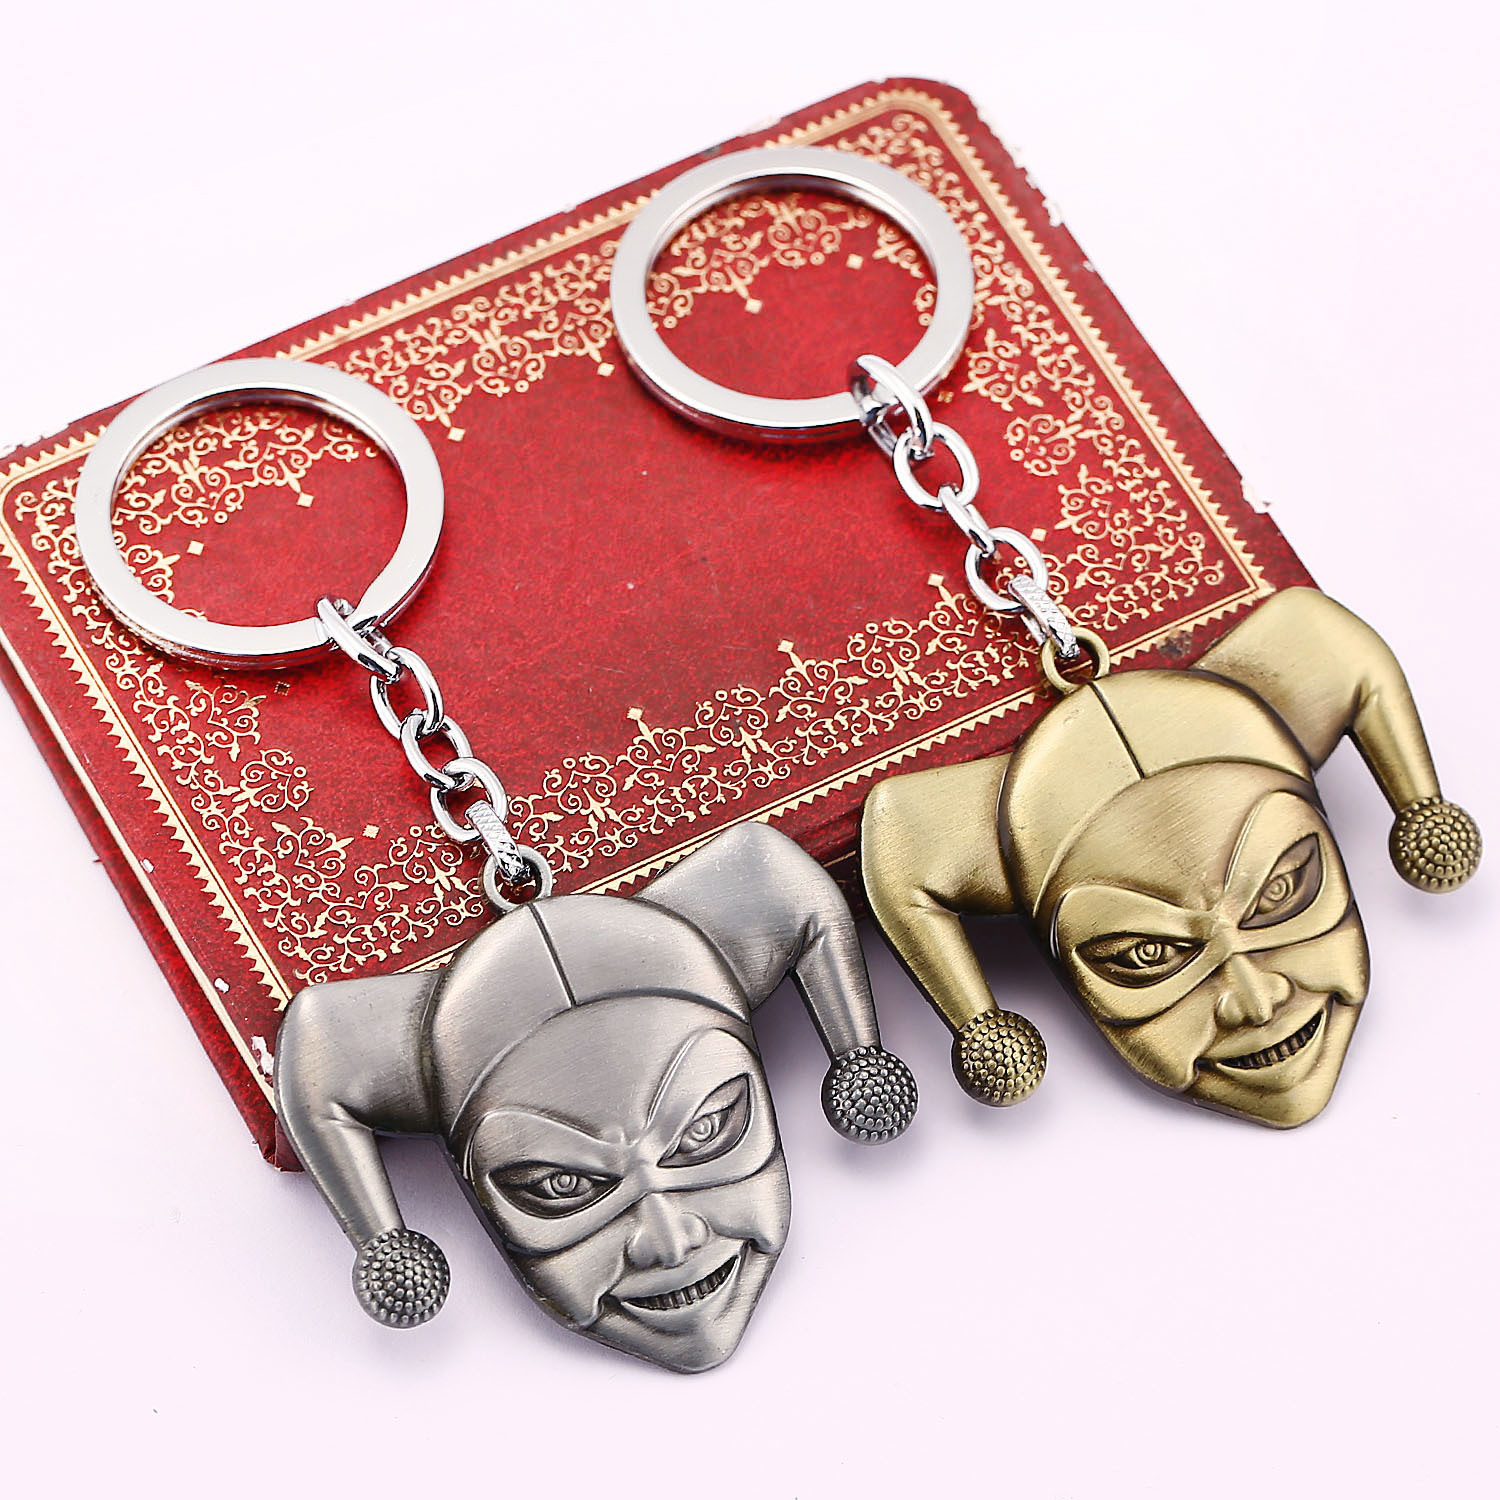 1pcs/set 2 Colors Julie New Arrival Suicide Squad Harley Quinn Joker Keychain Silver Alloy Key Chain Ring Holder For Fans Gift Toys & Hobbies